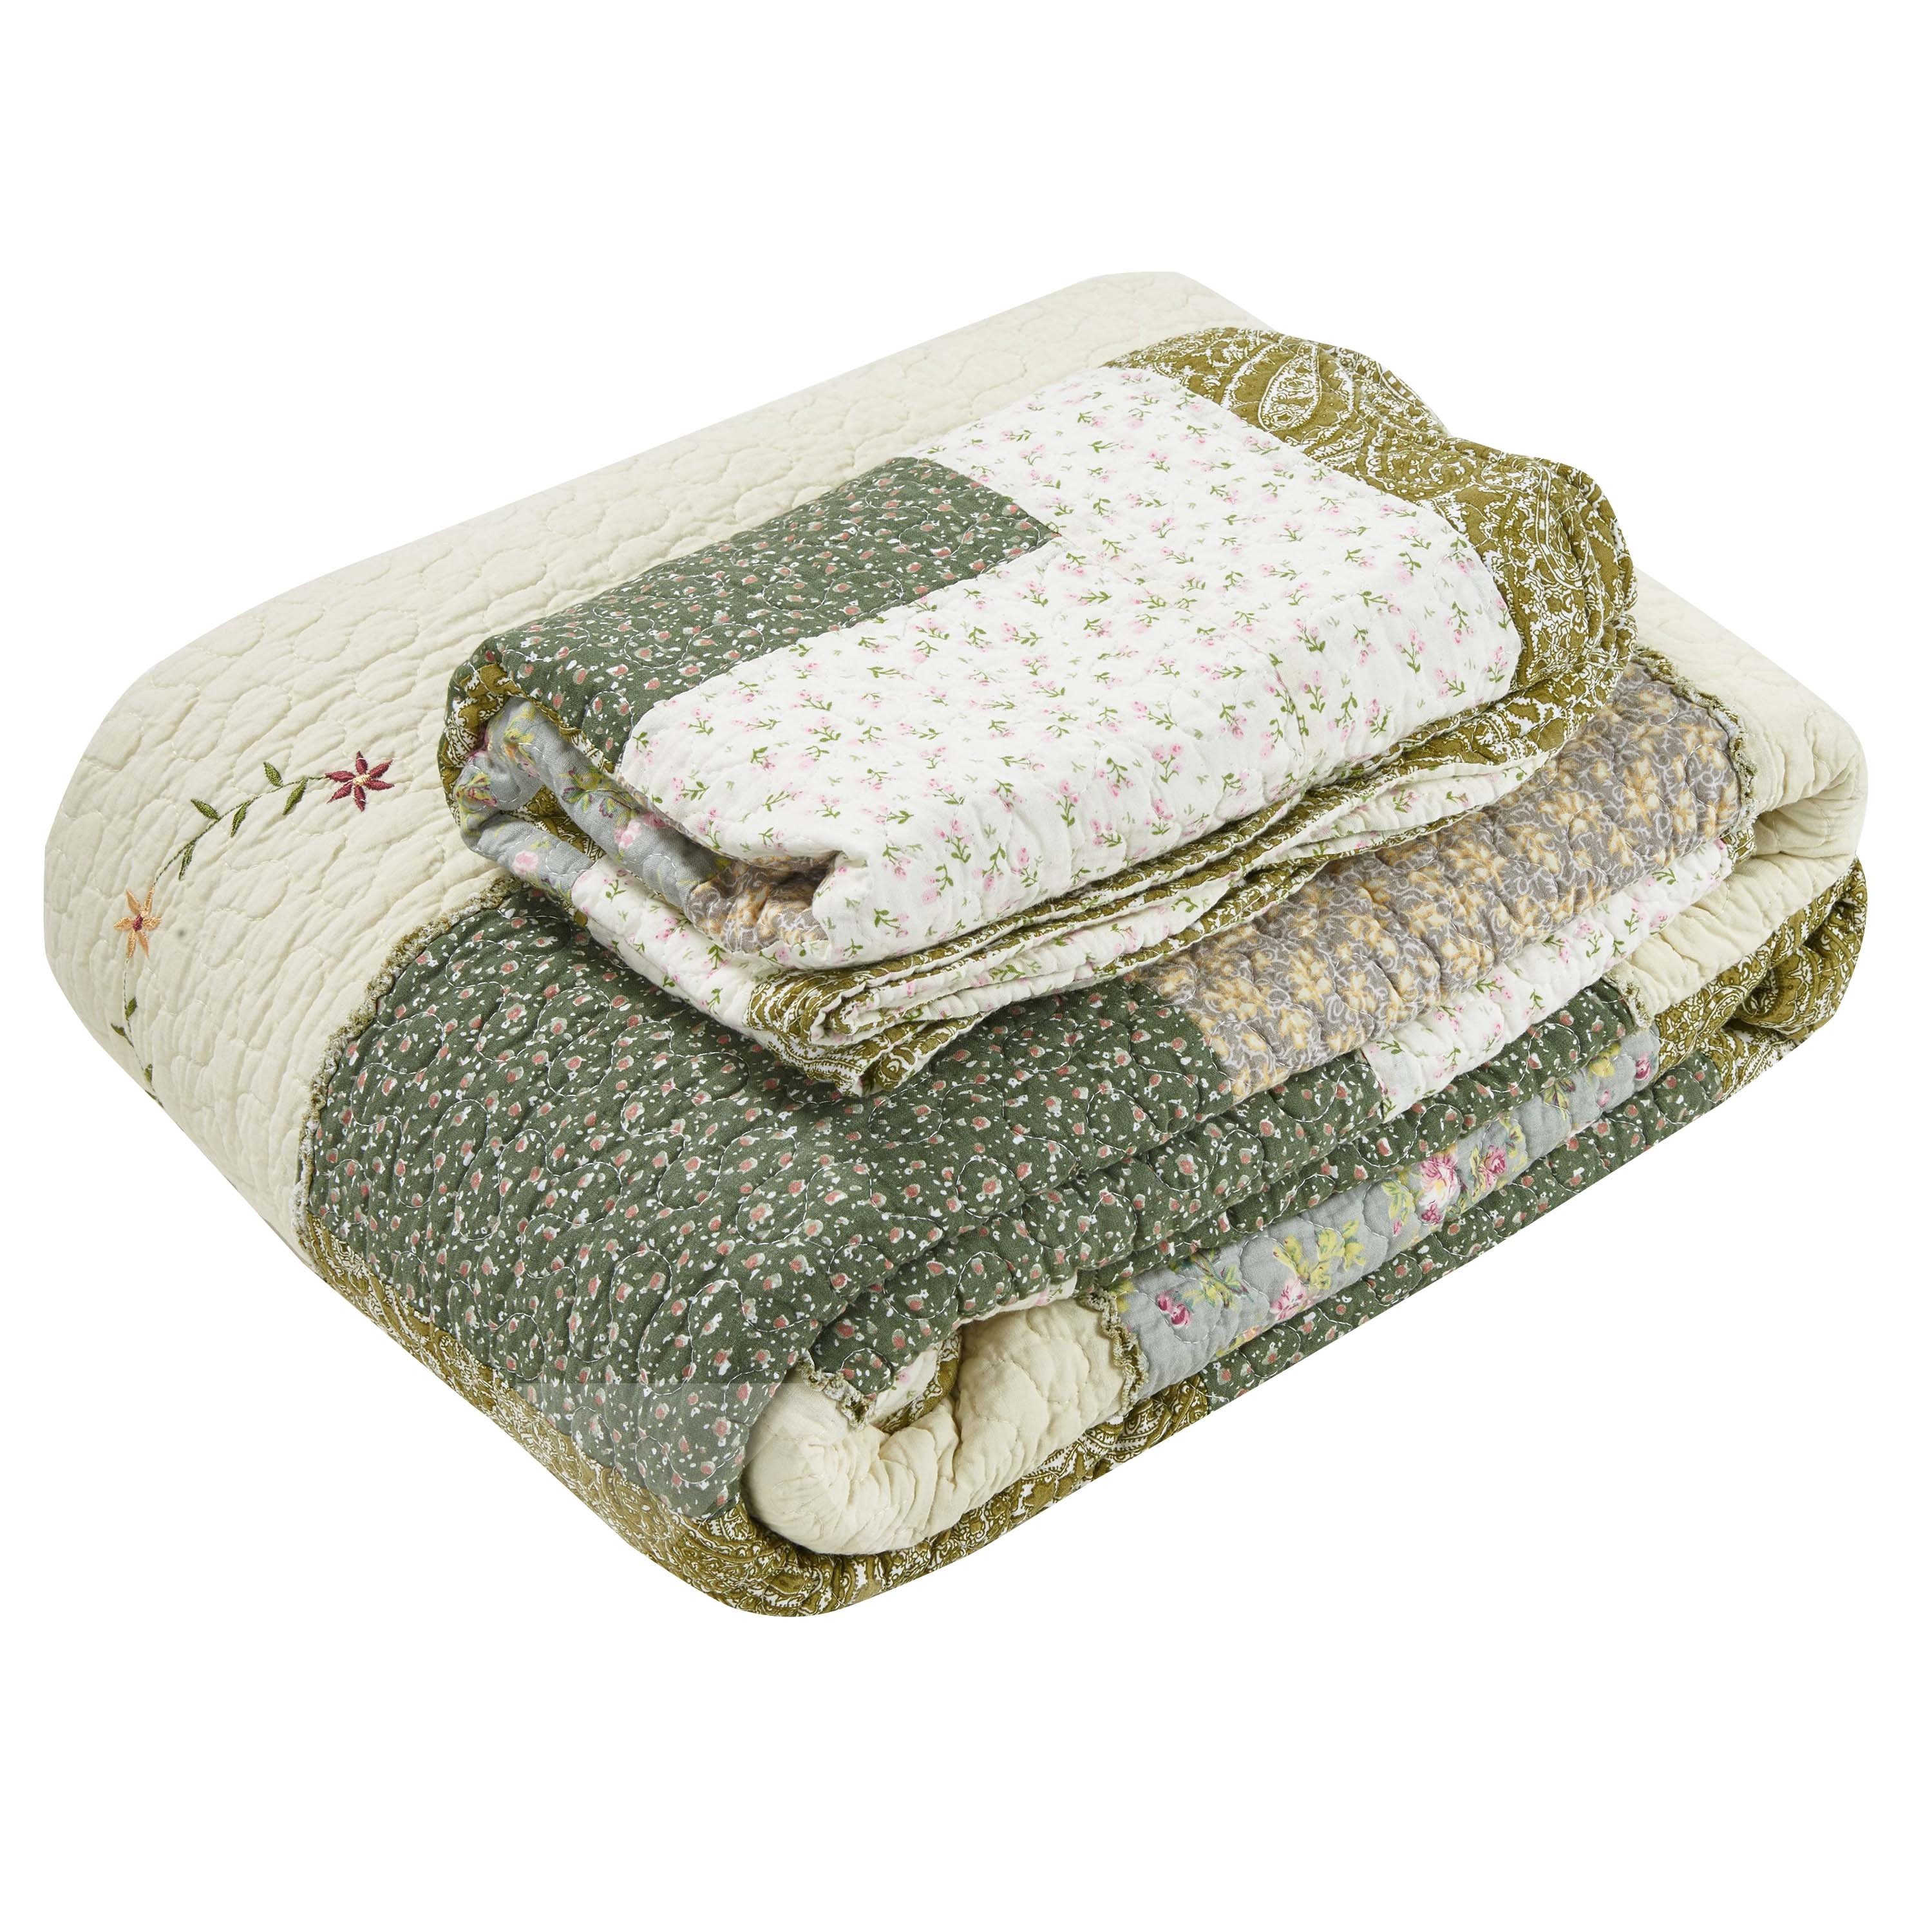 Little Floral Green King Size 3-Piece Cotton Bed in a Bag